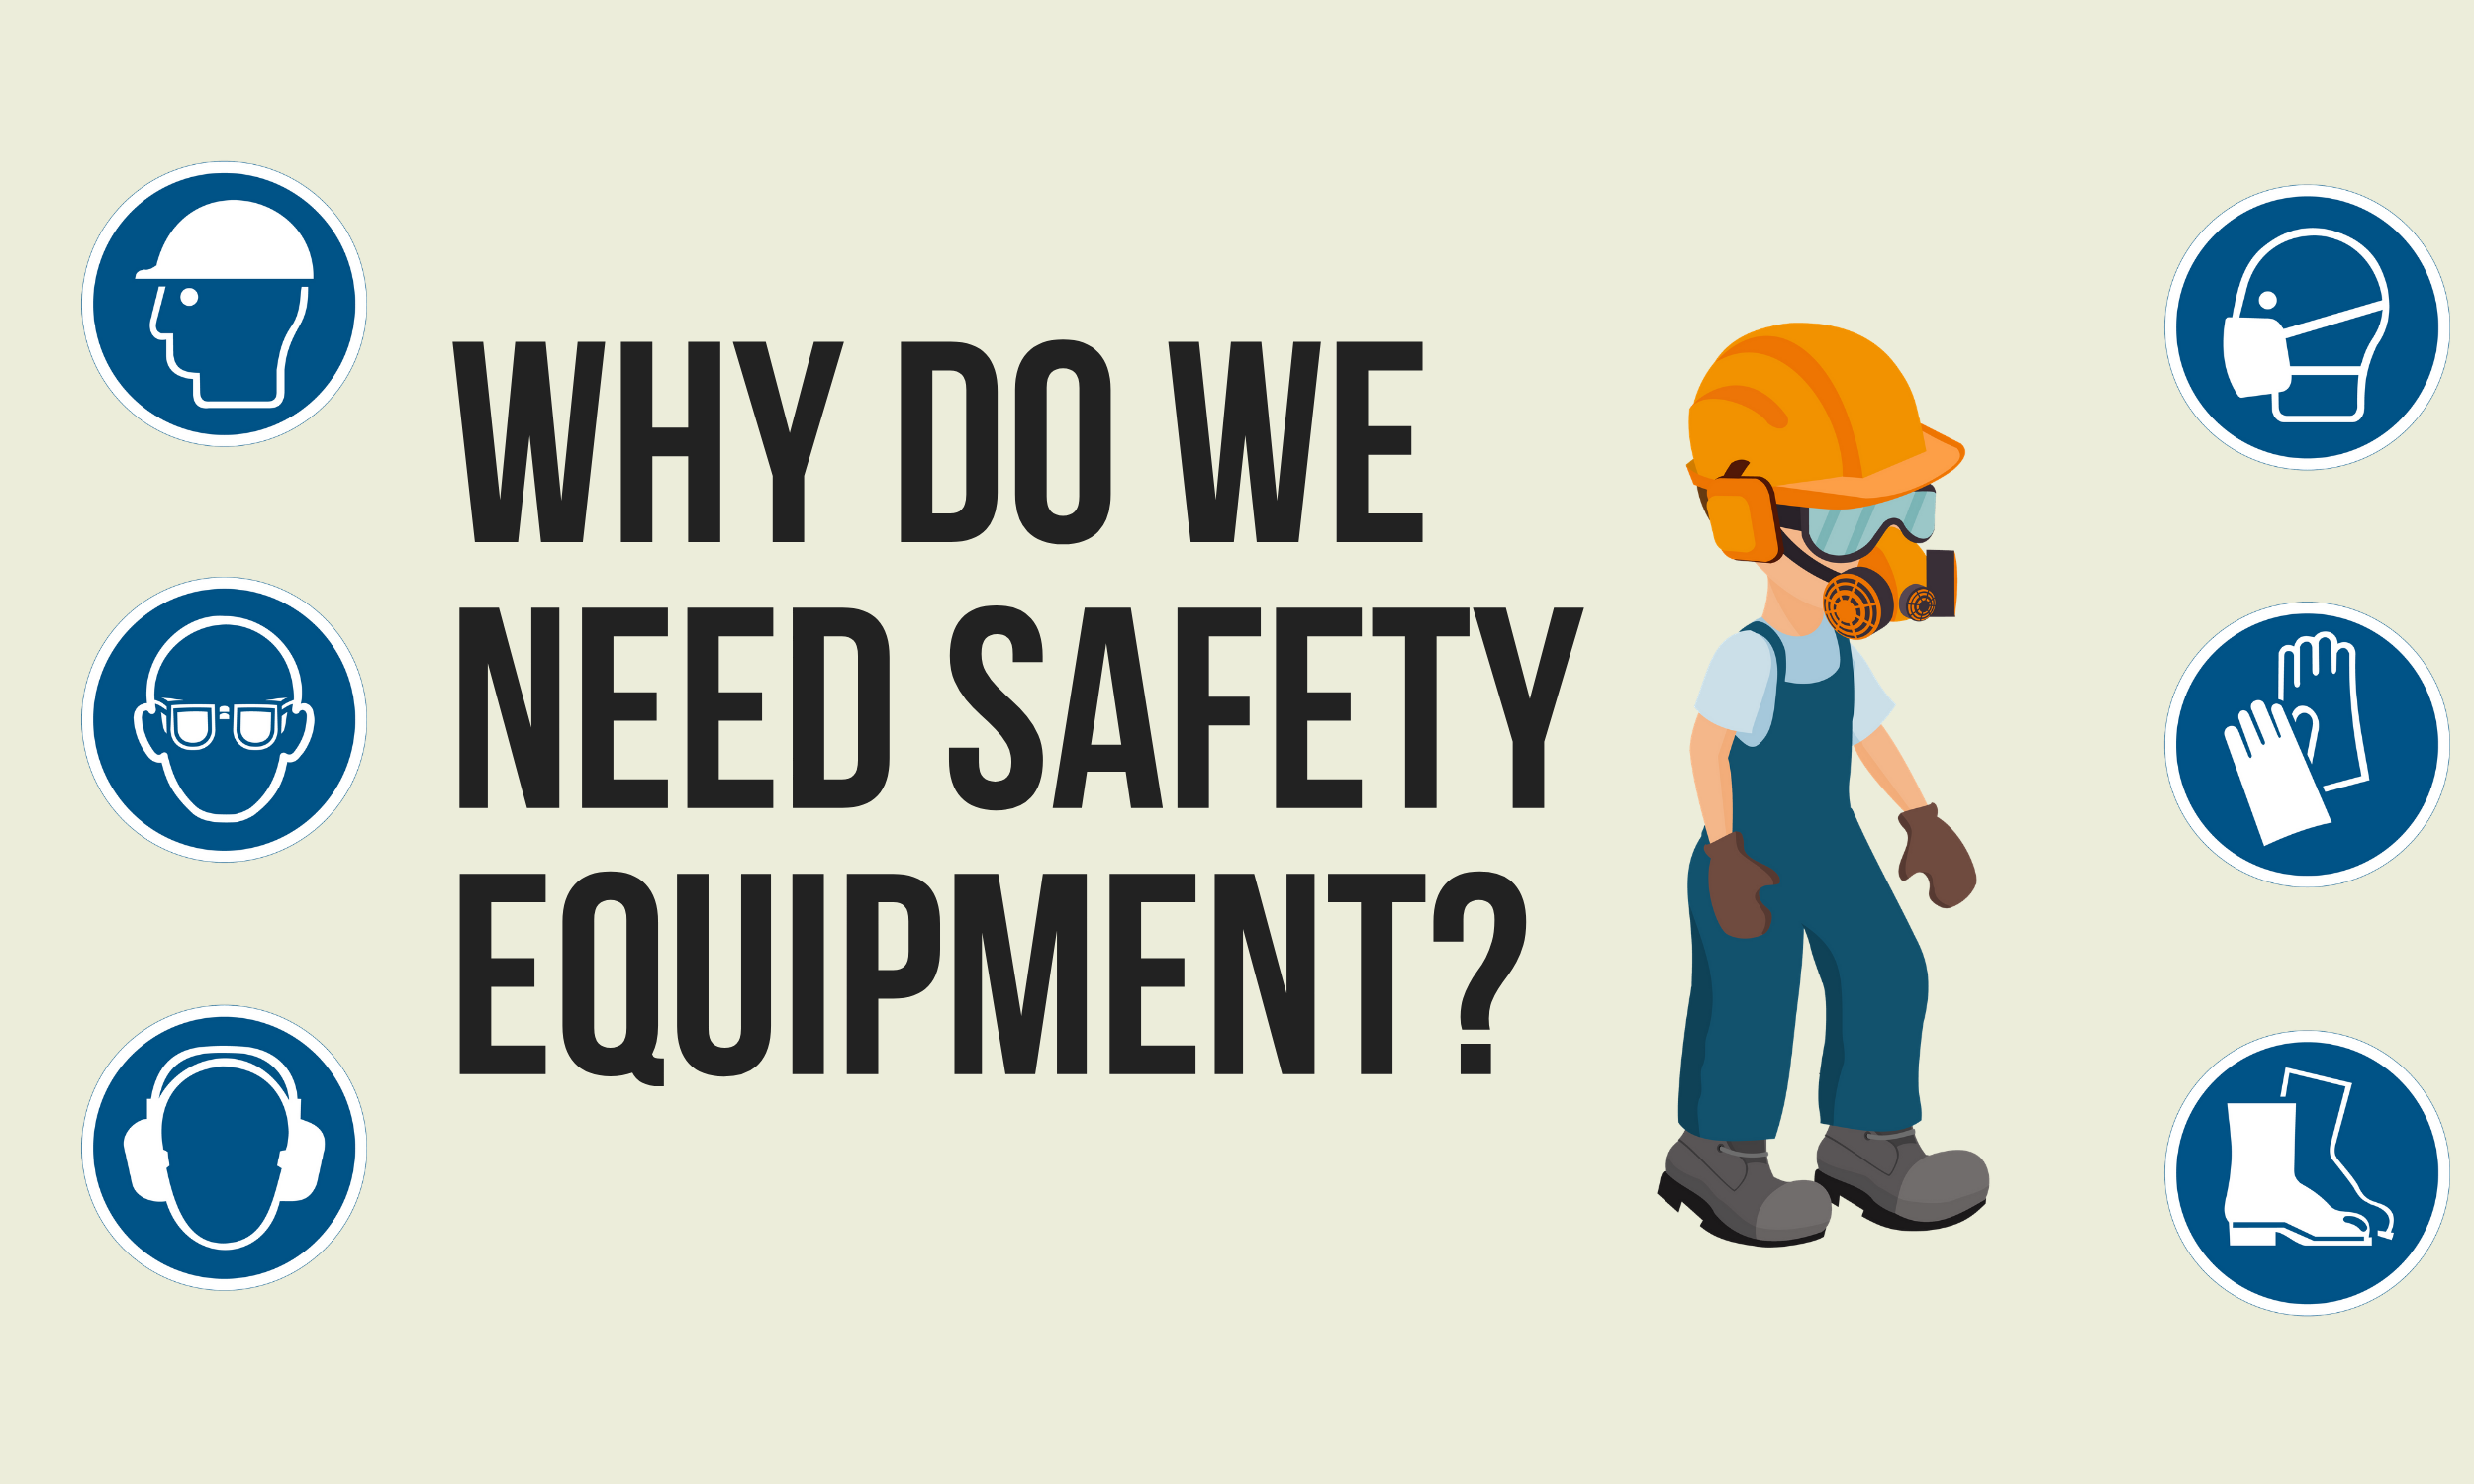 Why-do-we-need-safety-equipment